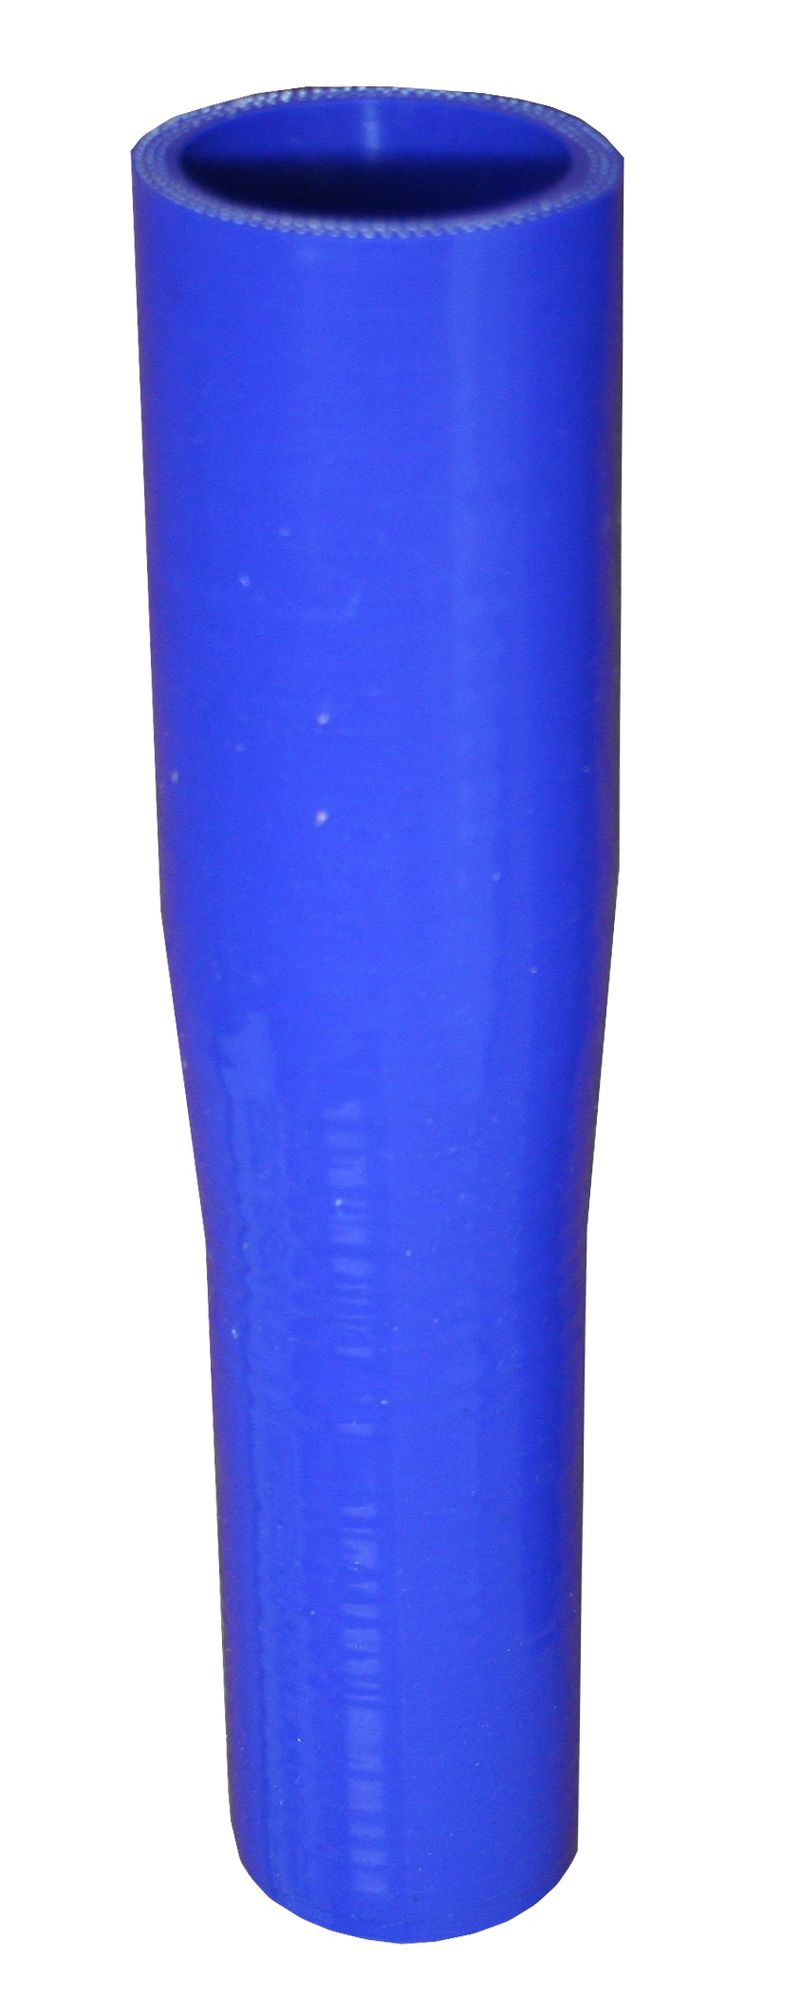 Hose  Blue Silicone  1.25 To 1.50 Coupler  6.00 Long